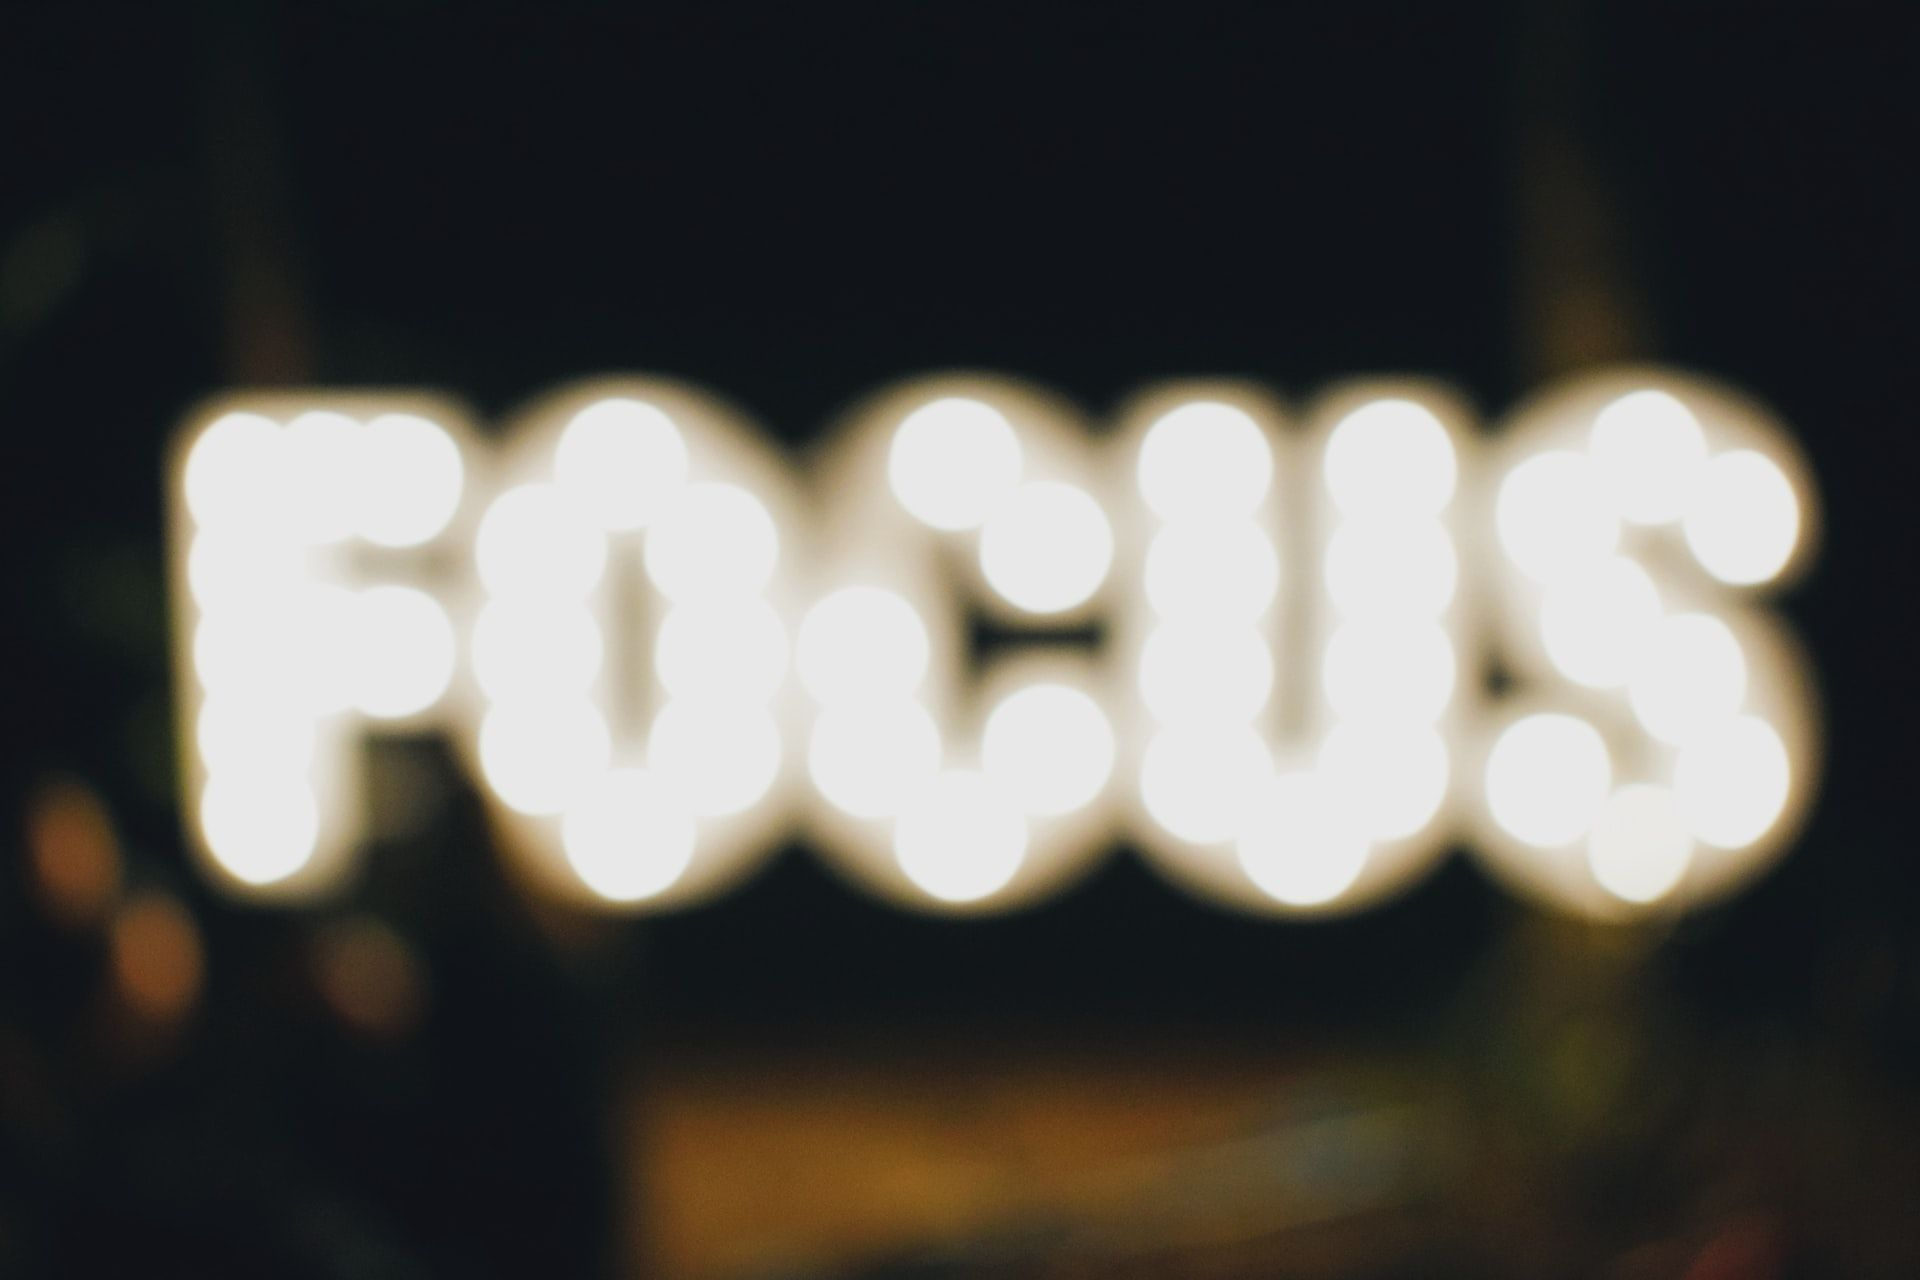 A neon sign that says 'focus' that is out of focus